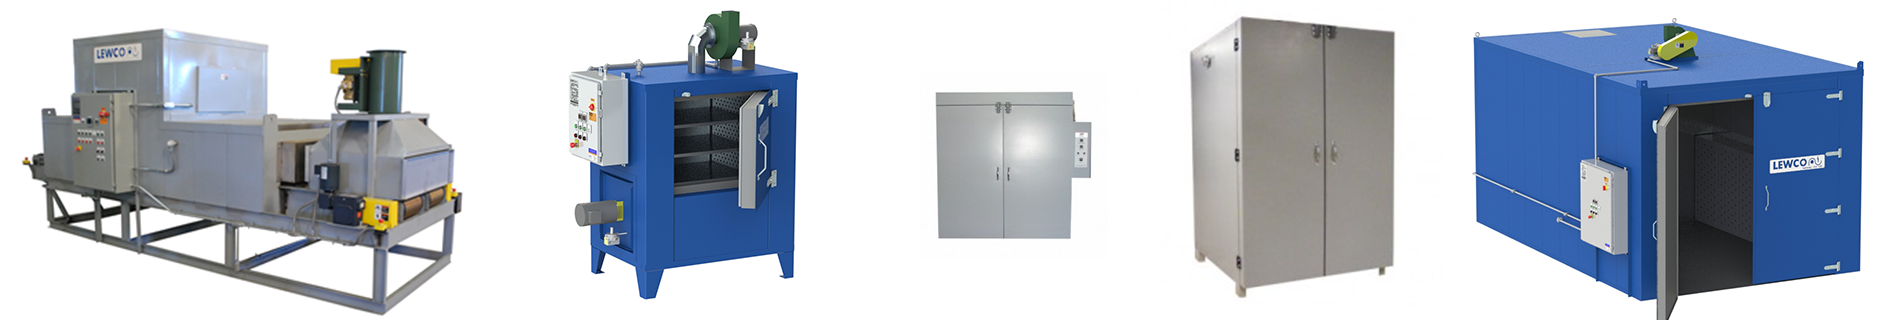 Industrial Ovens Manufacturers banner